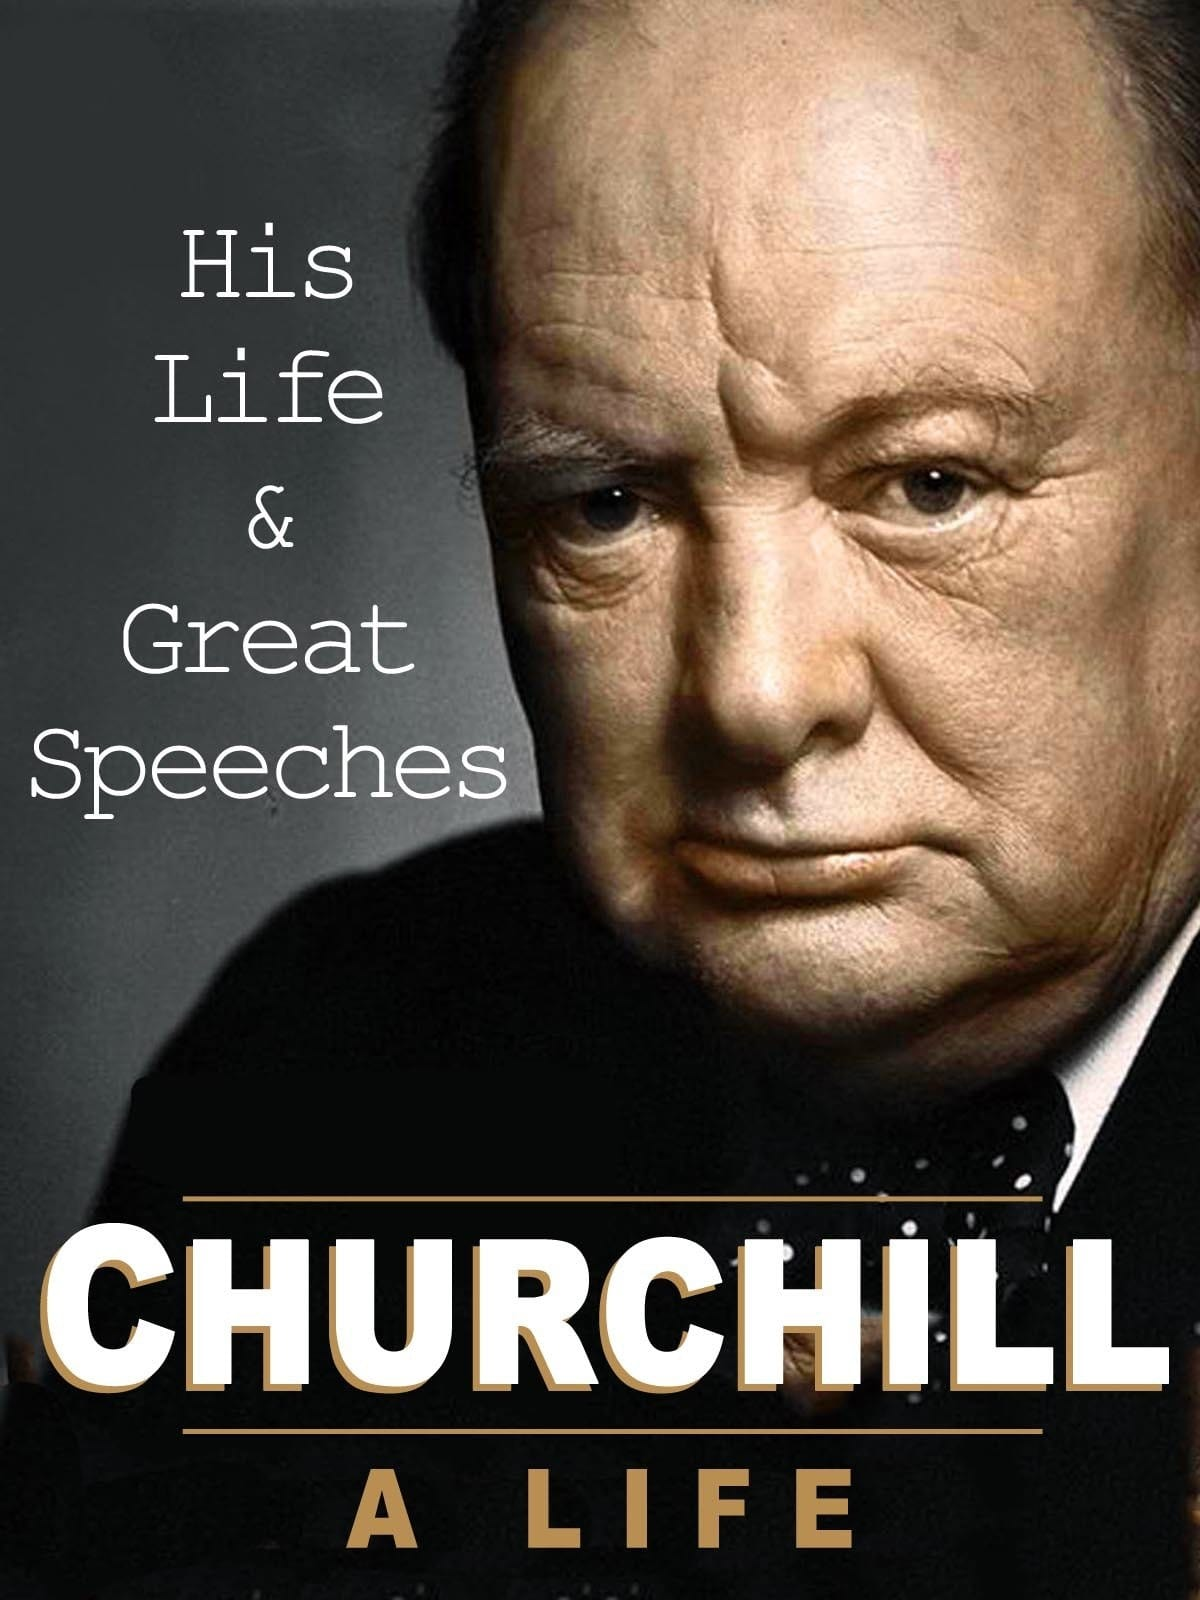 Churchill A Life: His Life & Great Speeches on FREECABLE TV